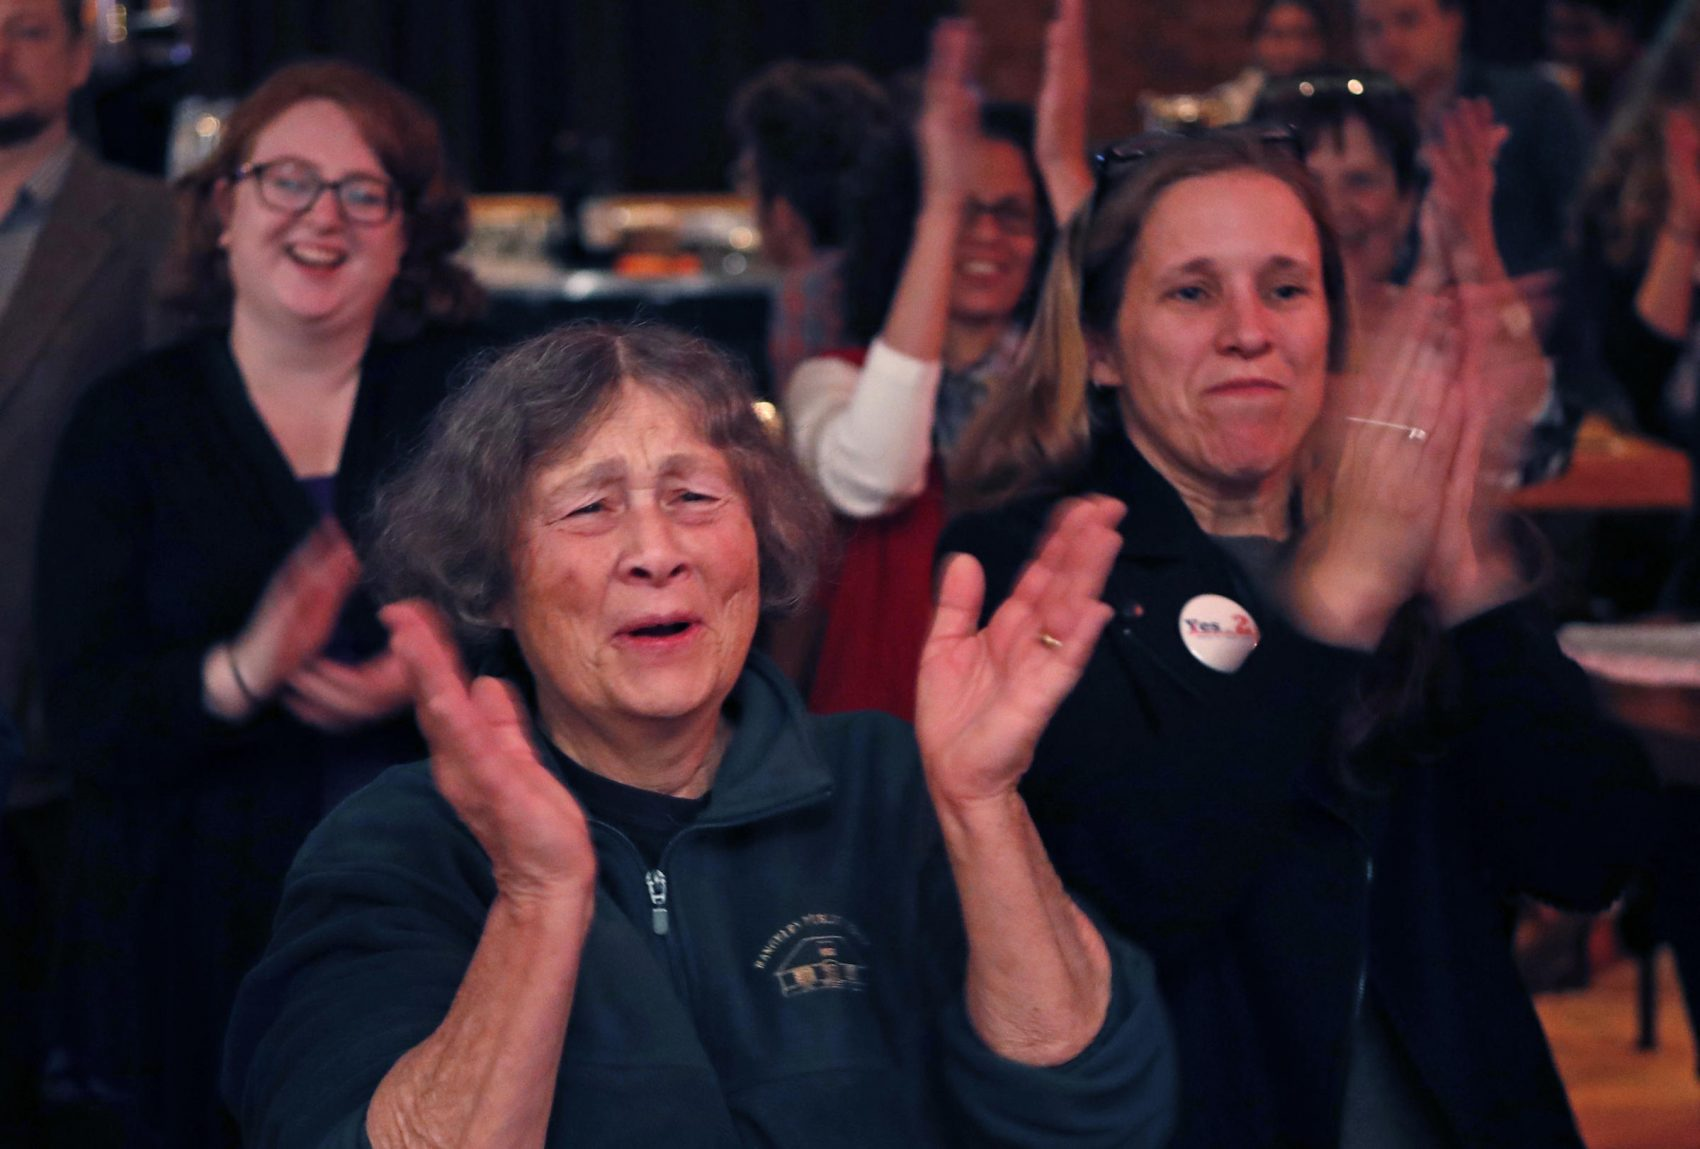 Chris Hastedt, left, and Robyn Merrill cheer during an announcement while awaiting results at the Mainers for Health Care election night party, Tuesday, Nov. 7, 2017, in Portland, Maine. (Robert F. Bukaty/AP)